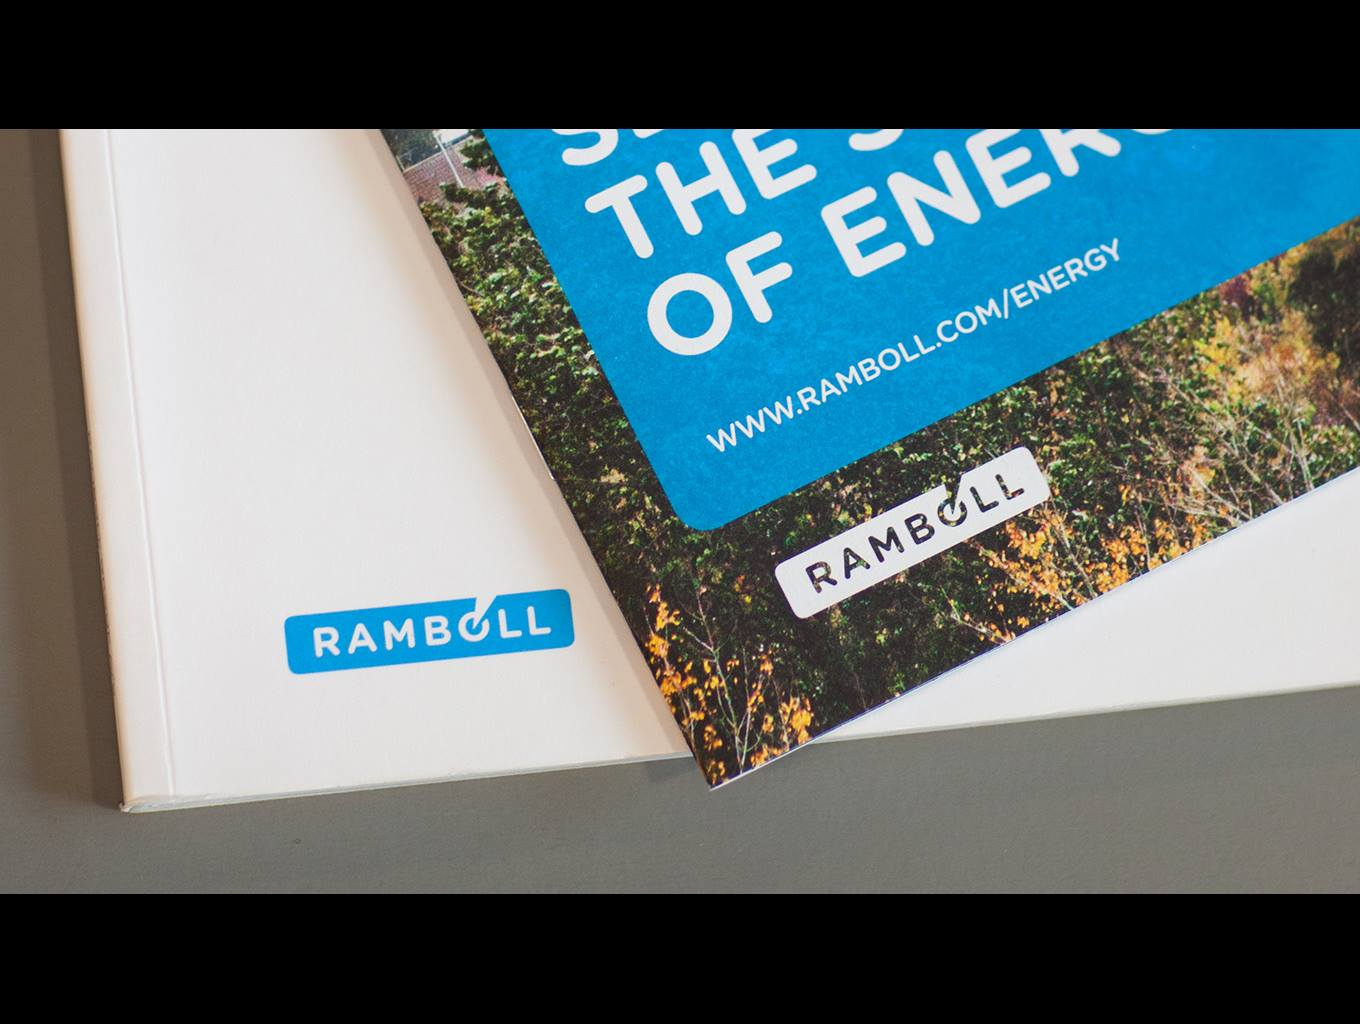 Material with Ramboll logo